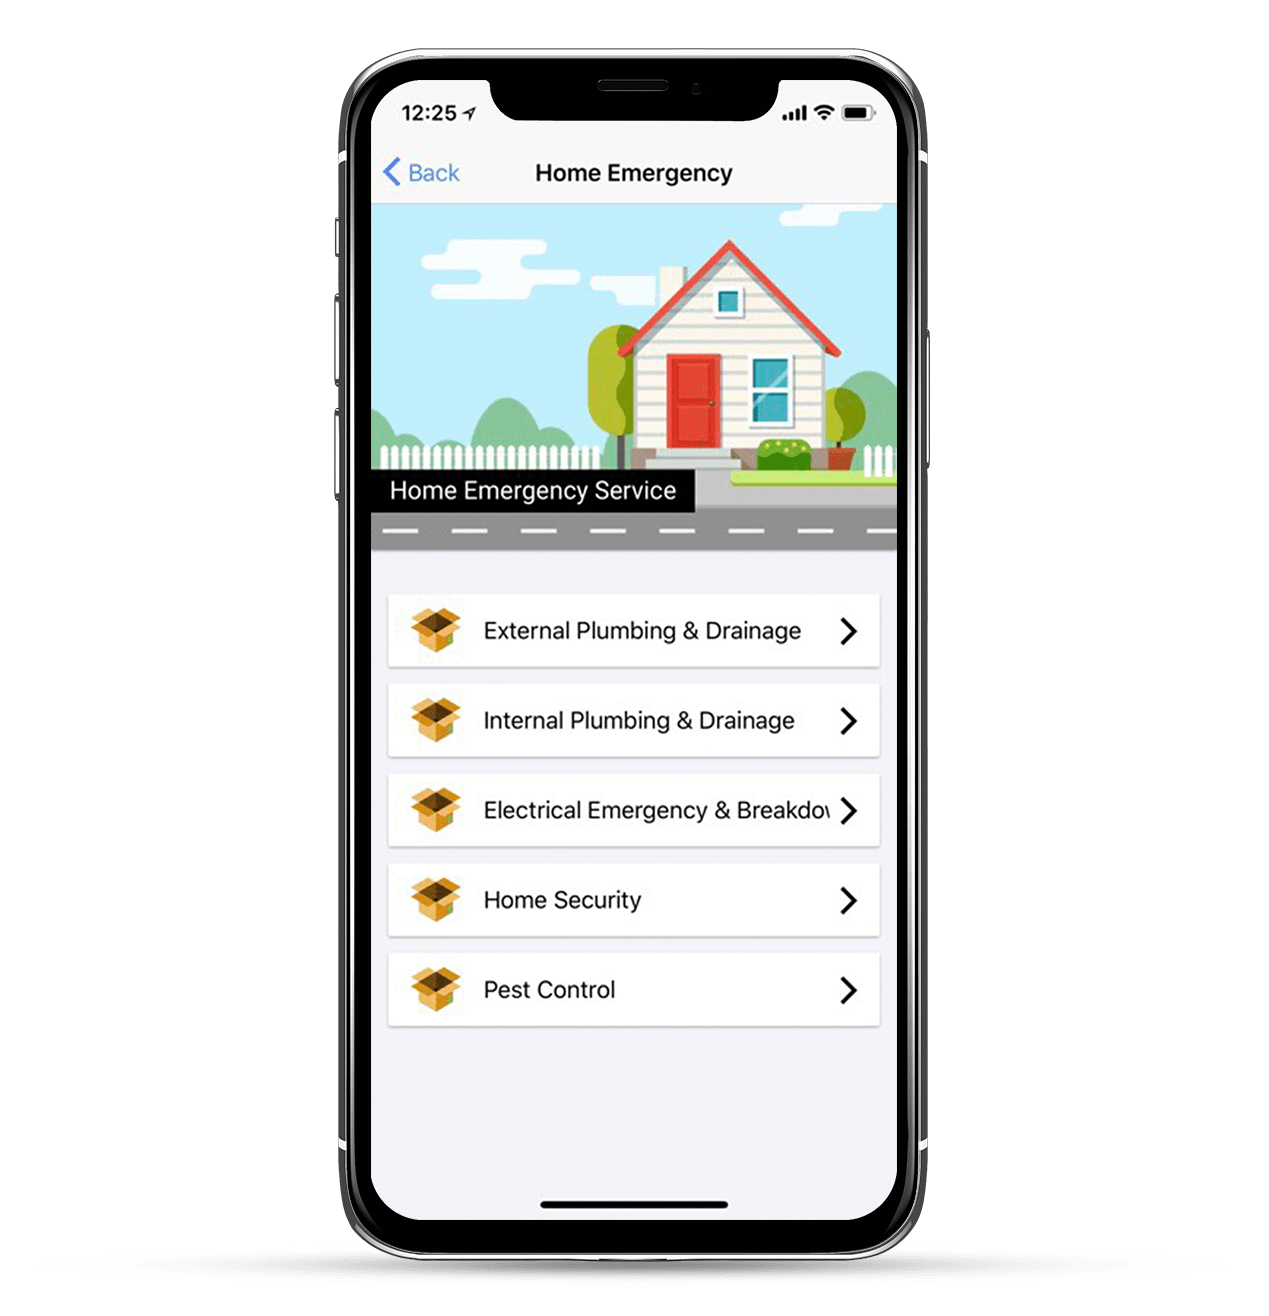 hight resolution of 24 7 home rescue mobile app home emergency page services